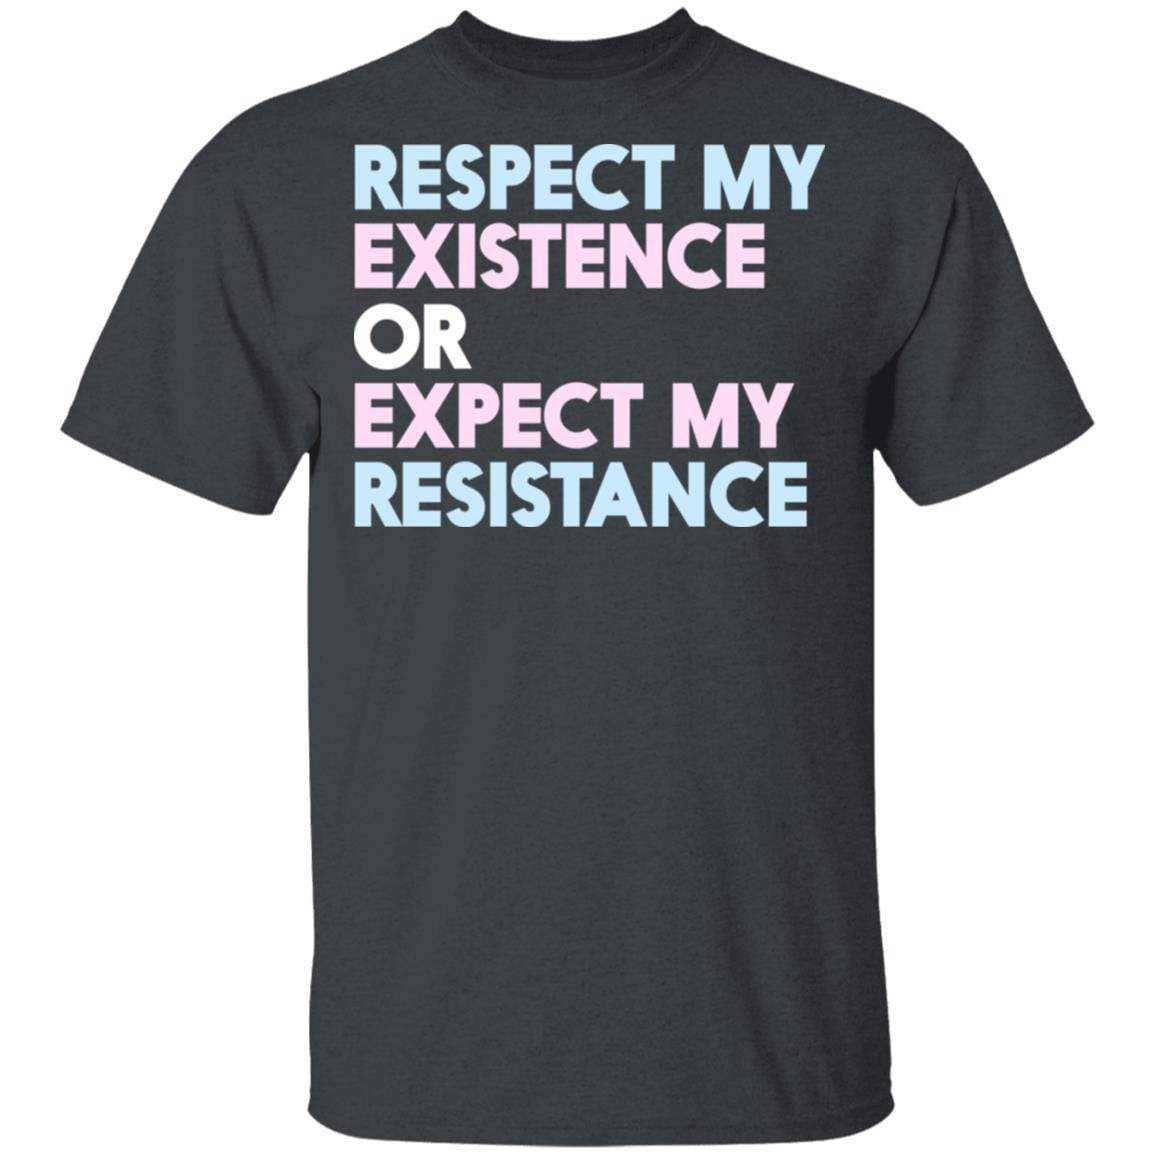 Respect My Existence Or Expect My Resistance T-Shirts, Hoodies 1049-9957-89706447-48192 - Tee Ript